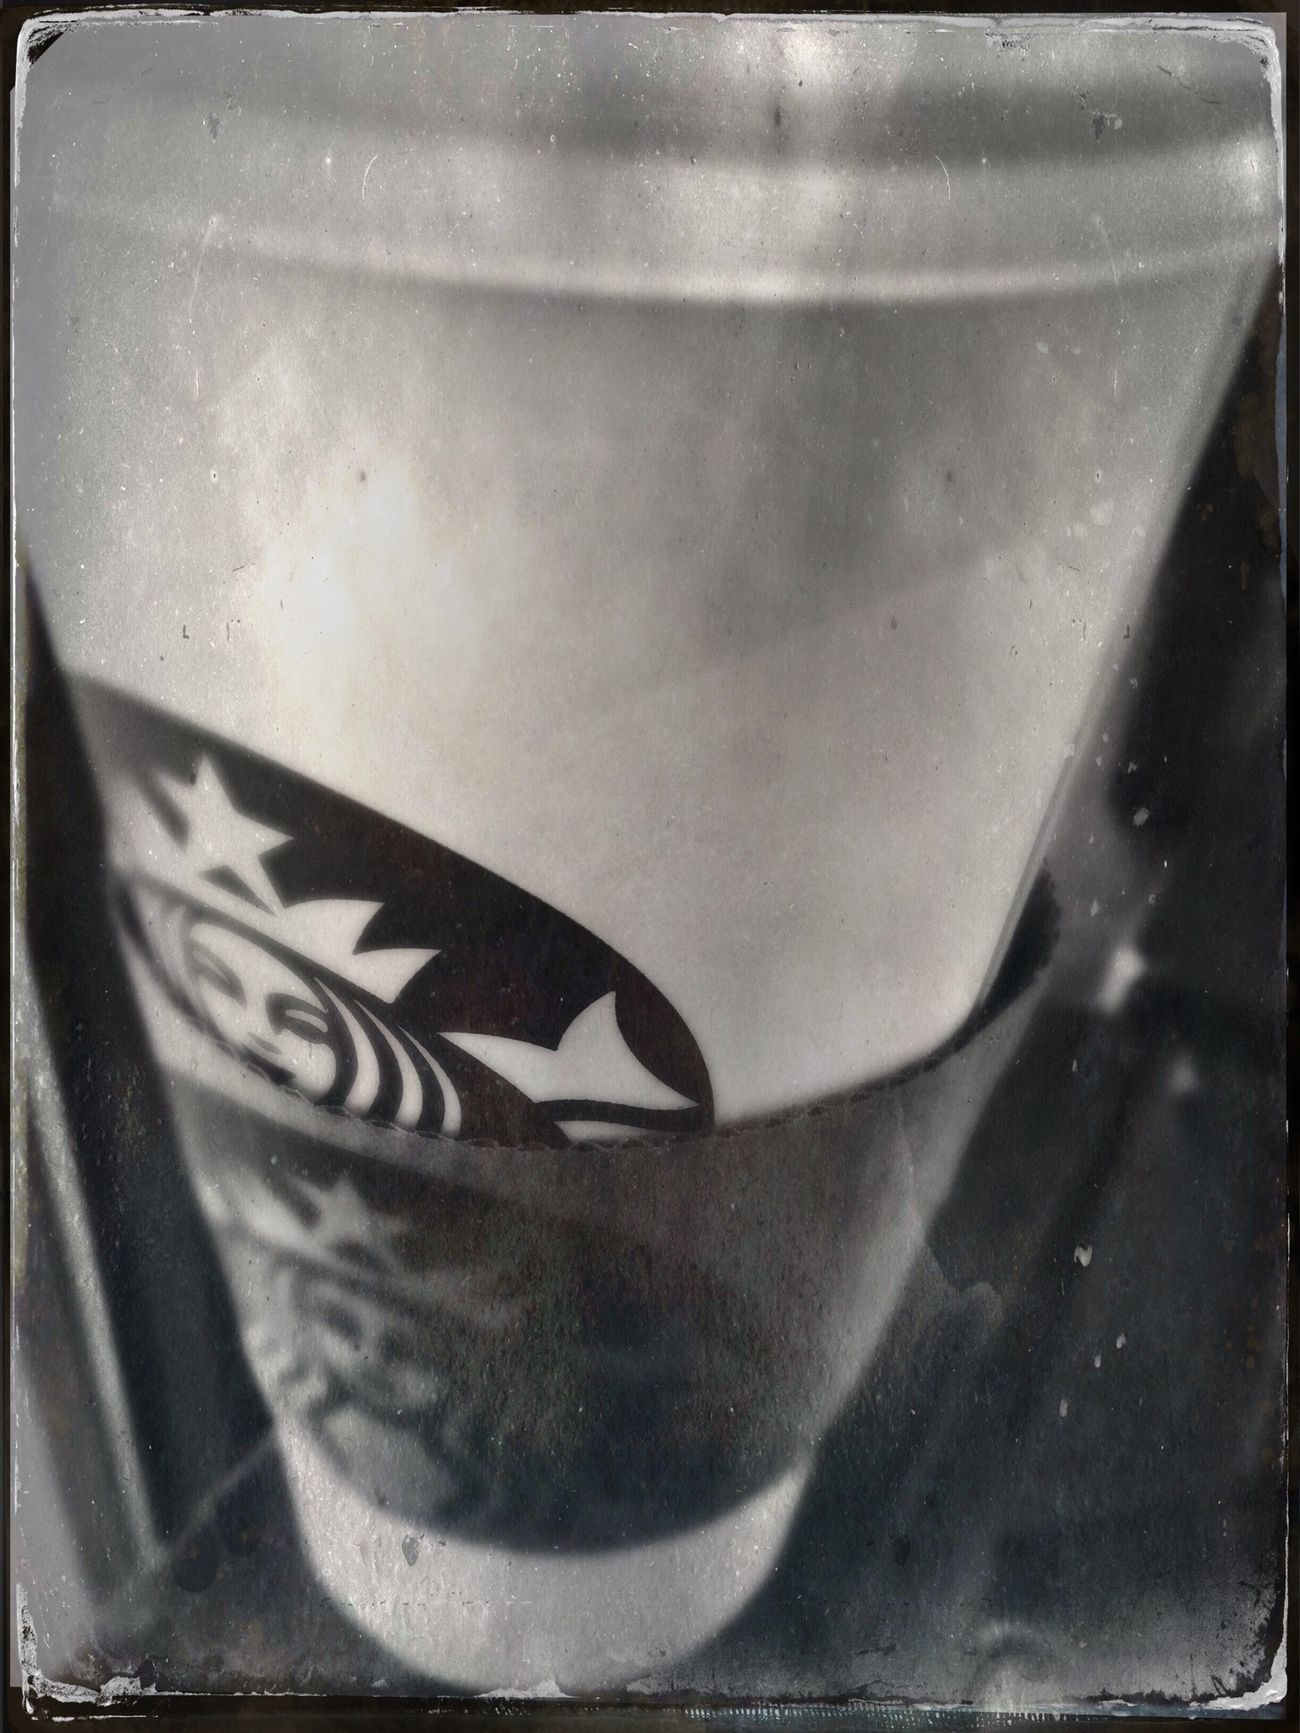 Black And White Tadaa Community EyeEm Best Edits Starbucks